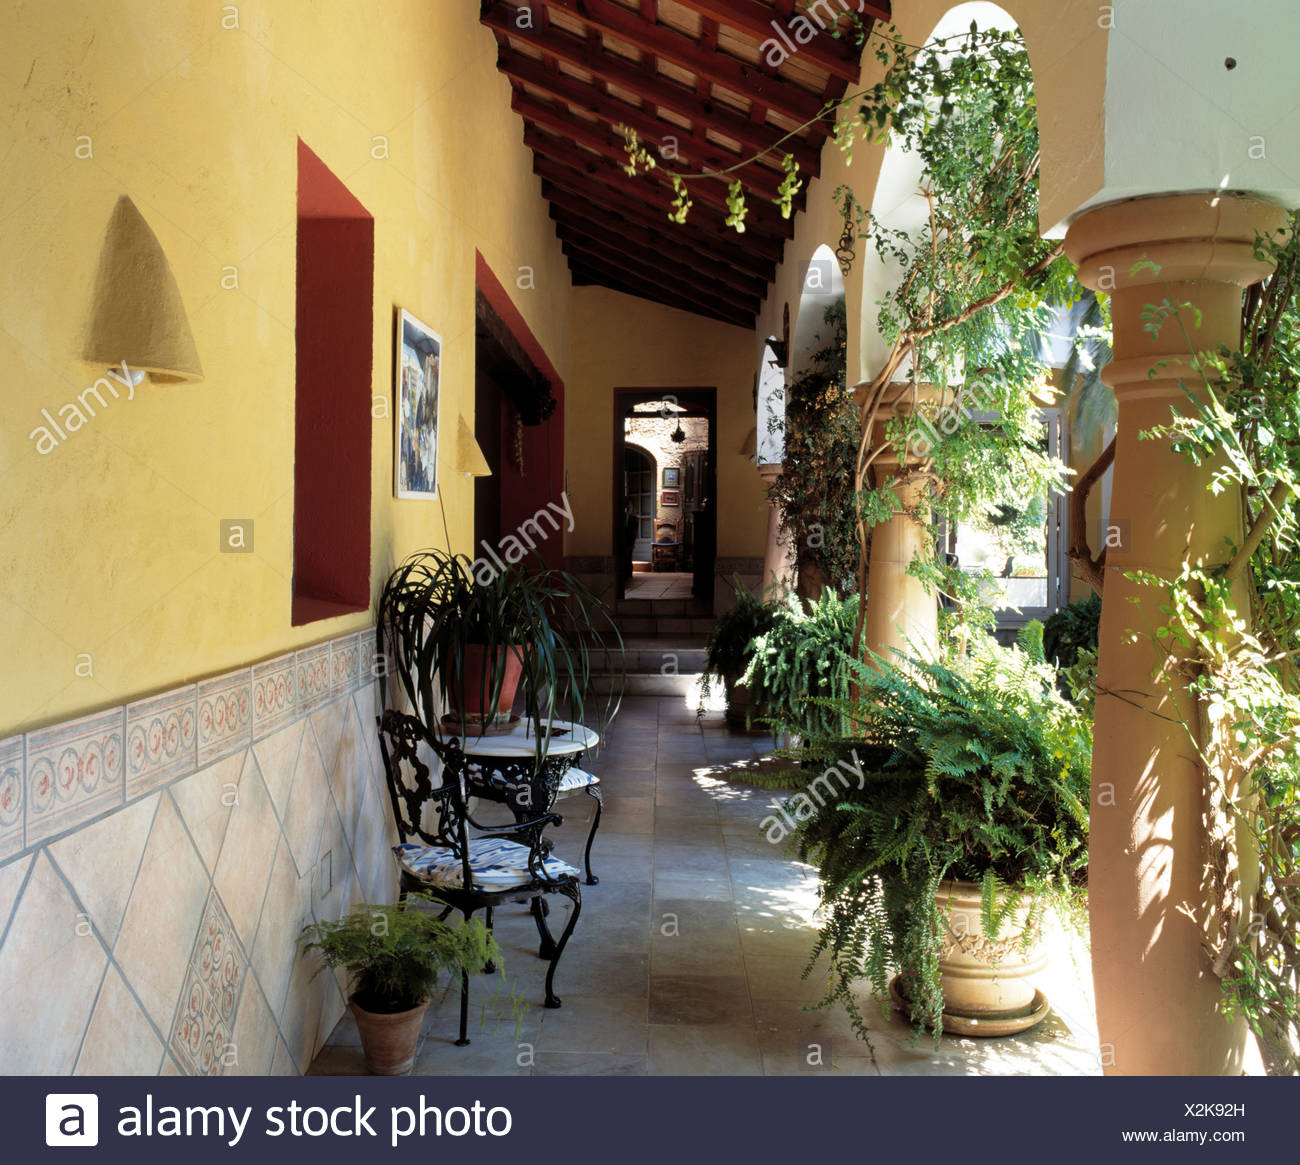 Lush Green Ferns And Climbers In Pots On Veranda Of Spanish Villa With  Wrought Iron Chairs